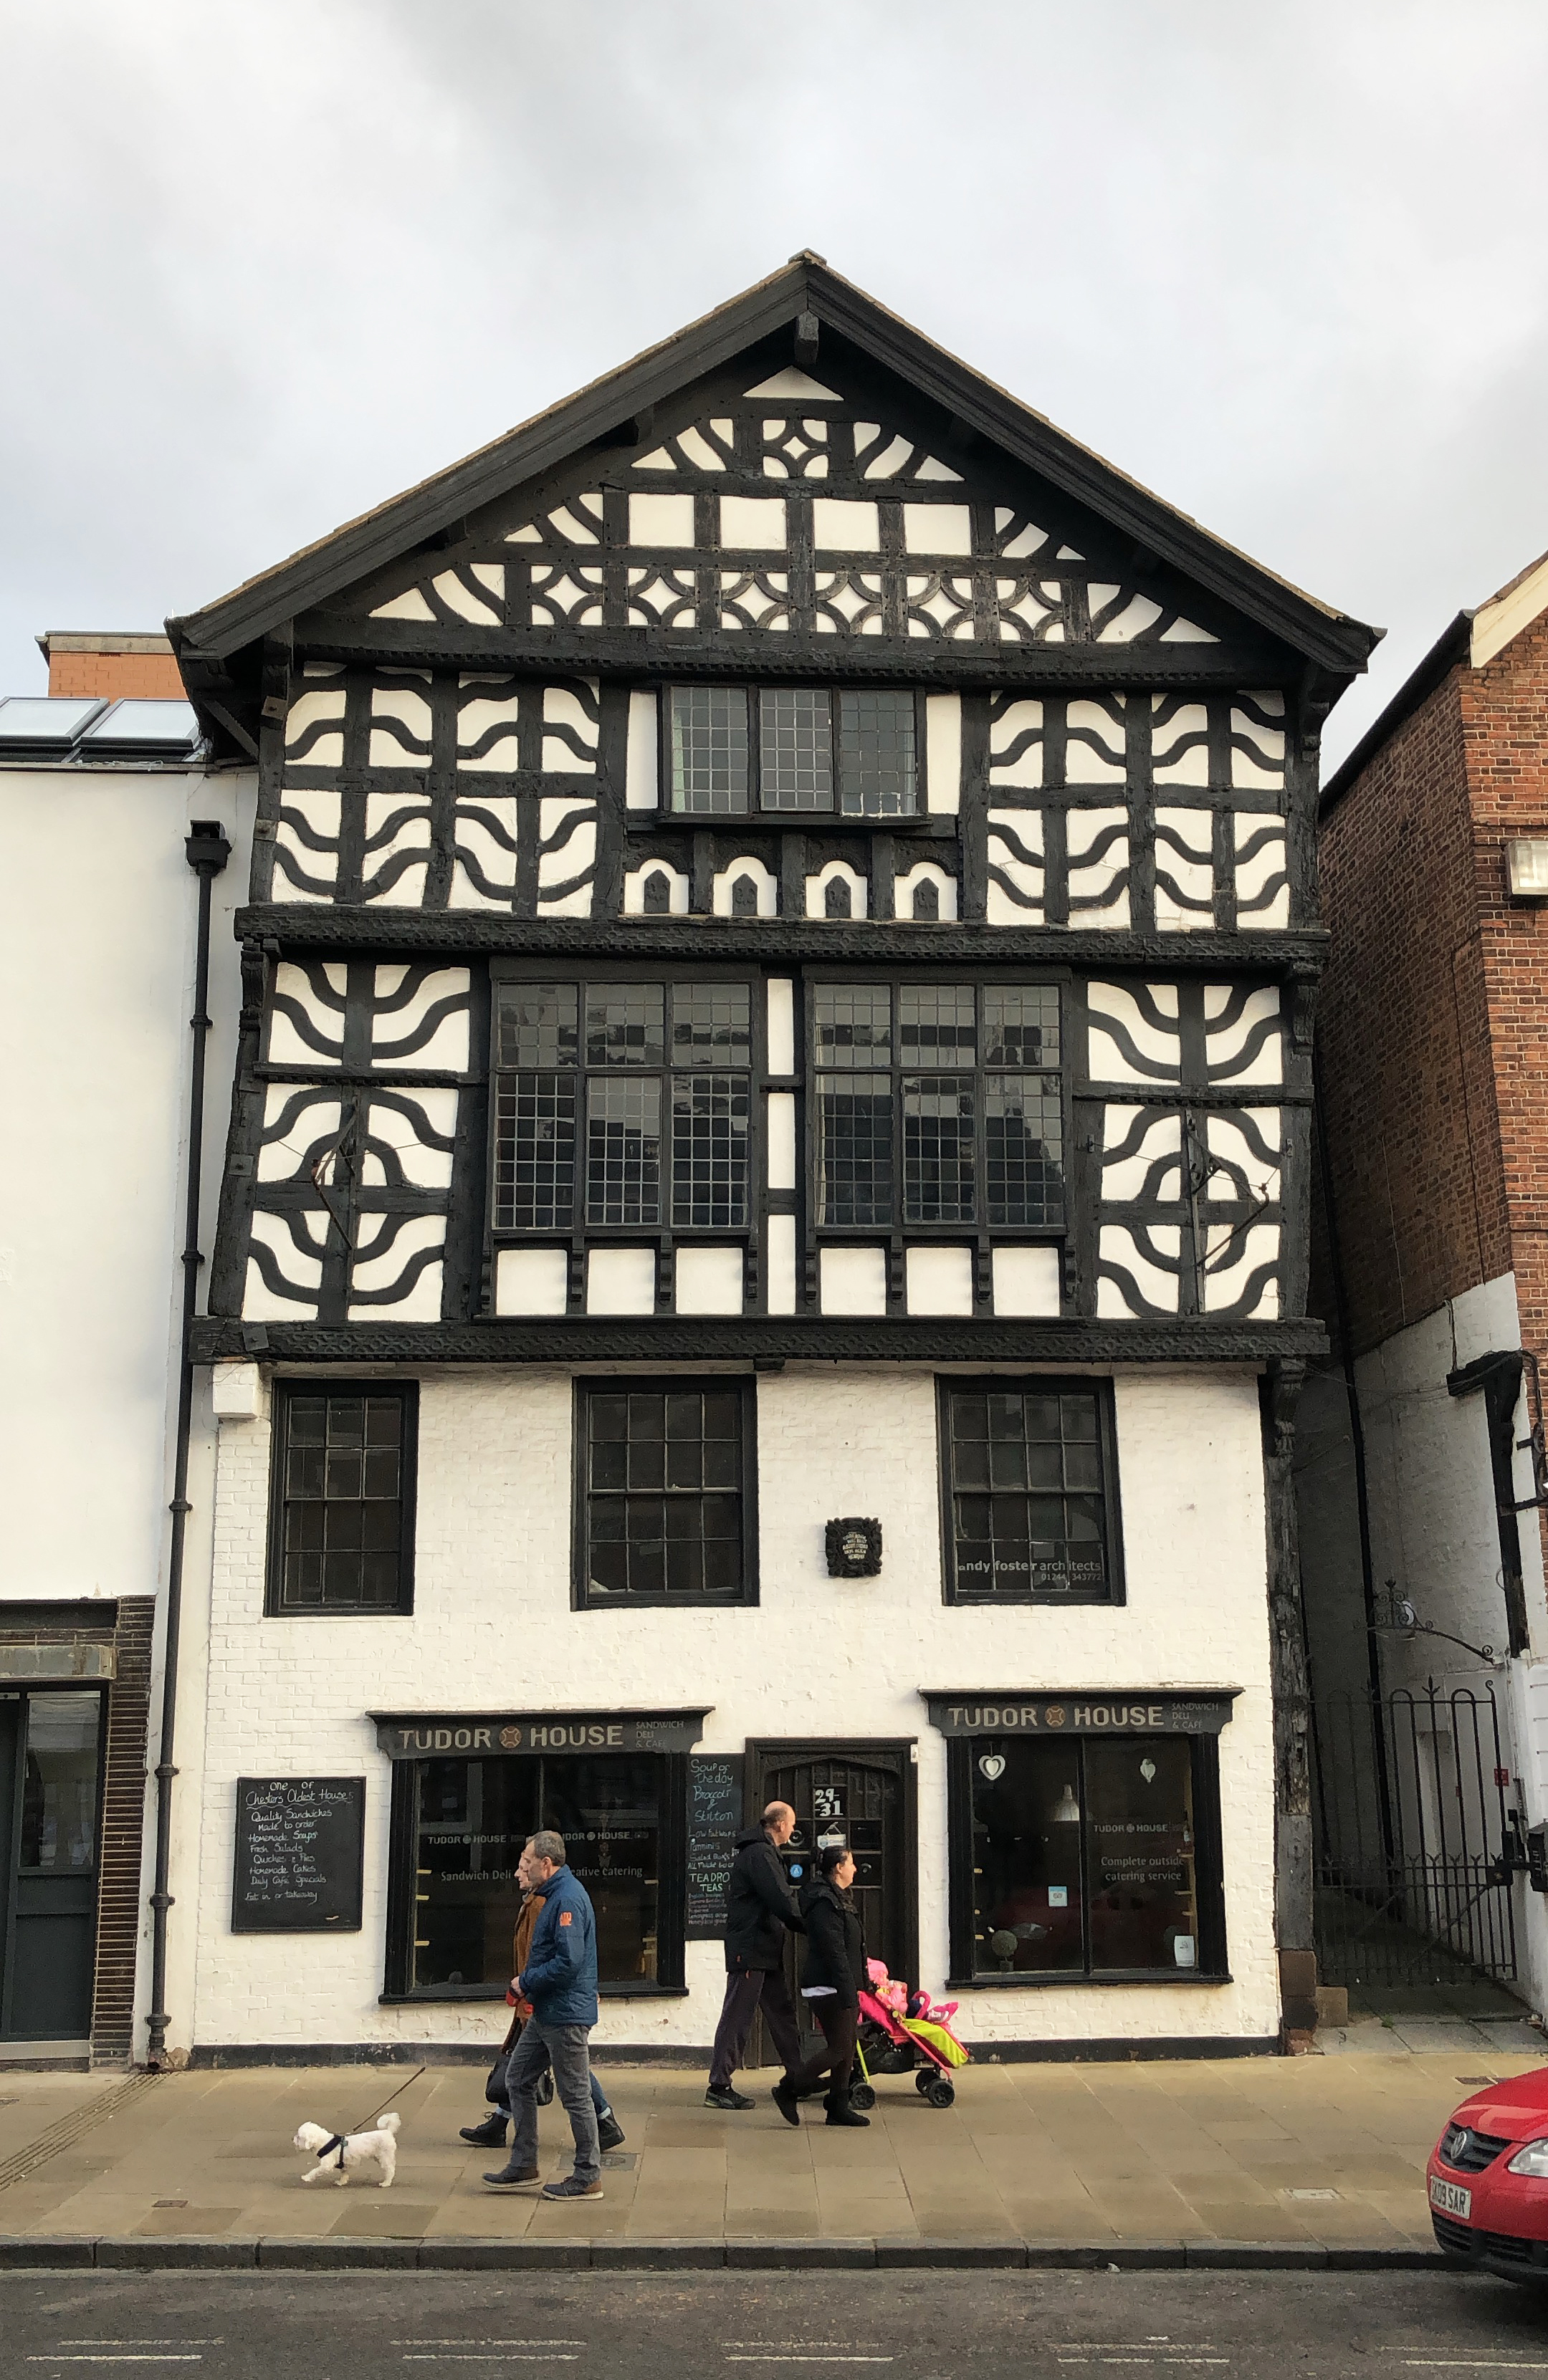 one of the amazing facades in chester, uk!